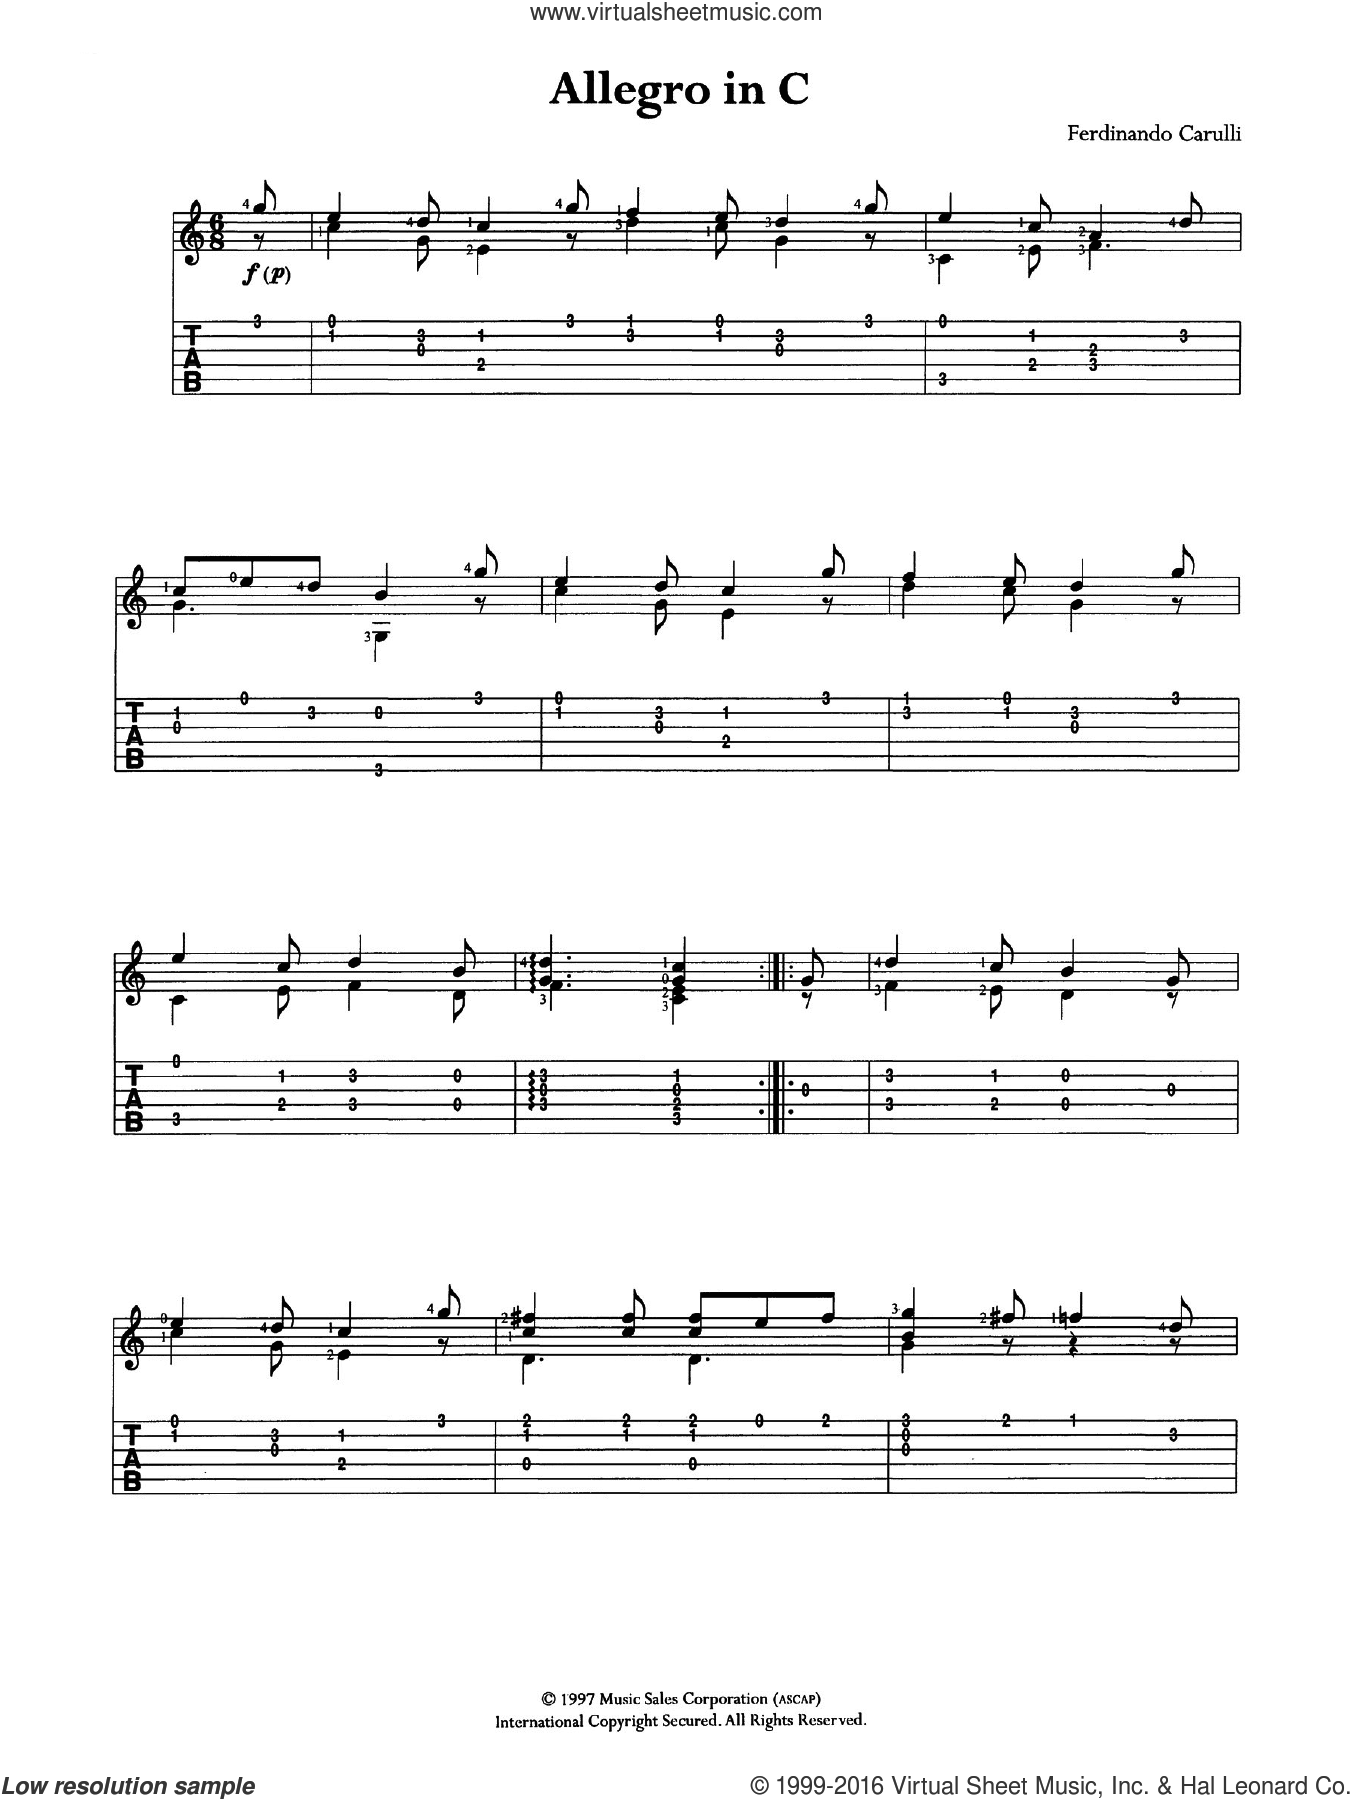 Allegro In C sheet music for guitar (tablature) by Ferdinando Carulli. Score Image Preview.